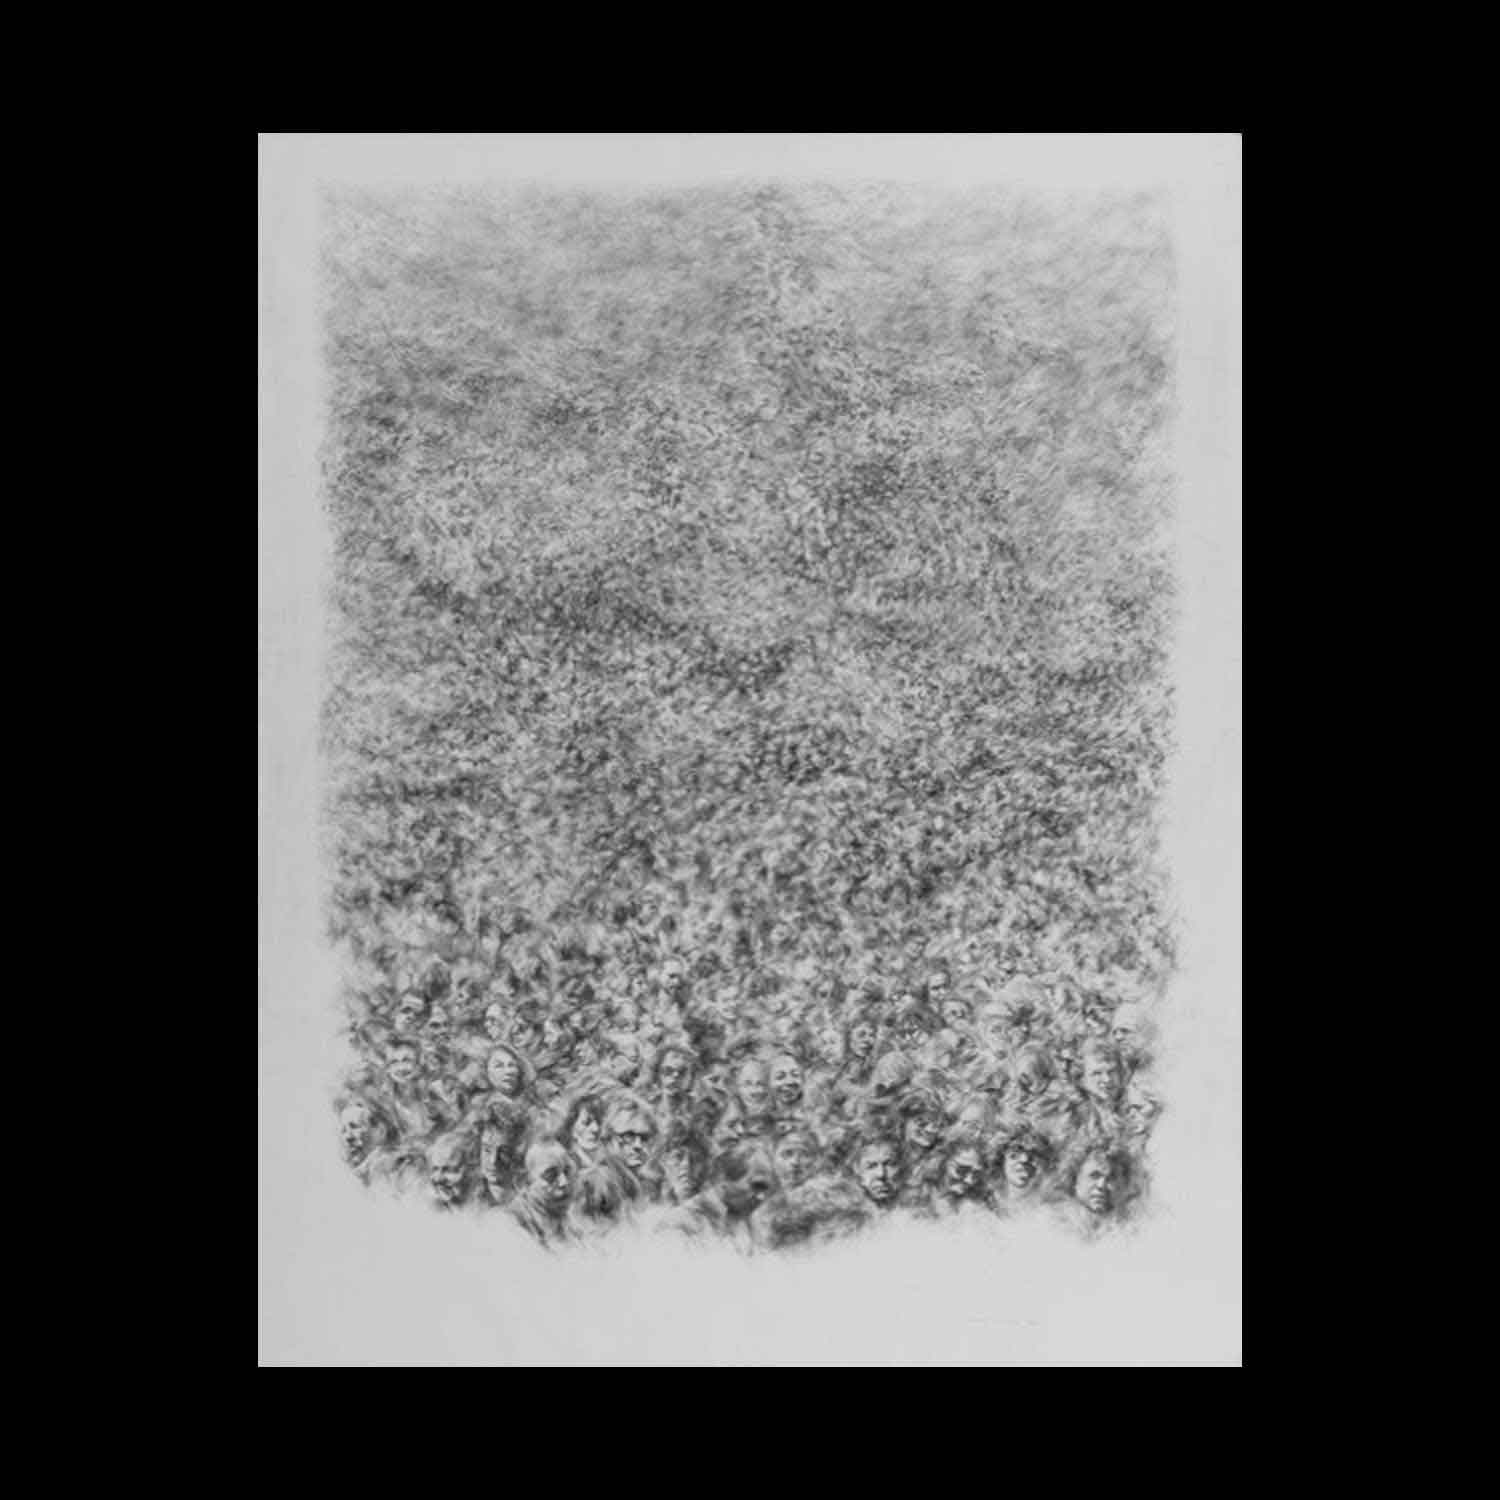 Michel Houssin, Foule, 1991. Lead pencil drawing, 150 x 120 cm. Framed, UV protection museum quality glass